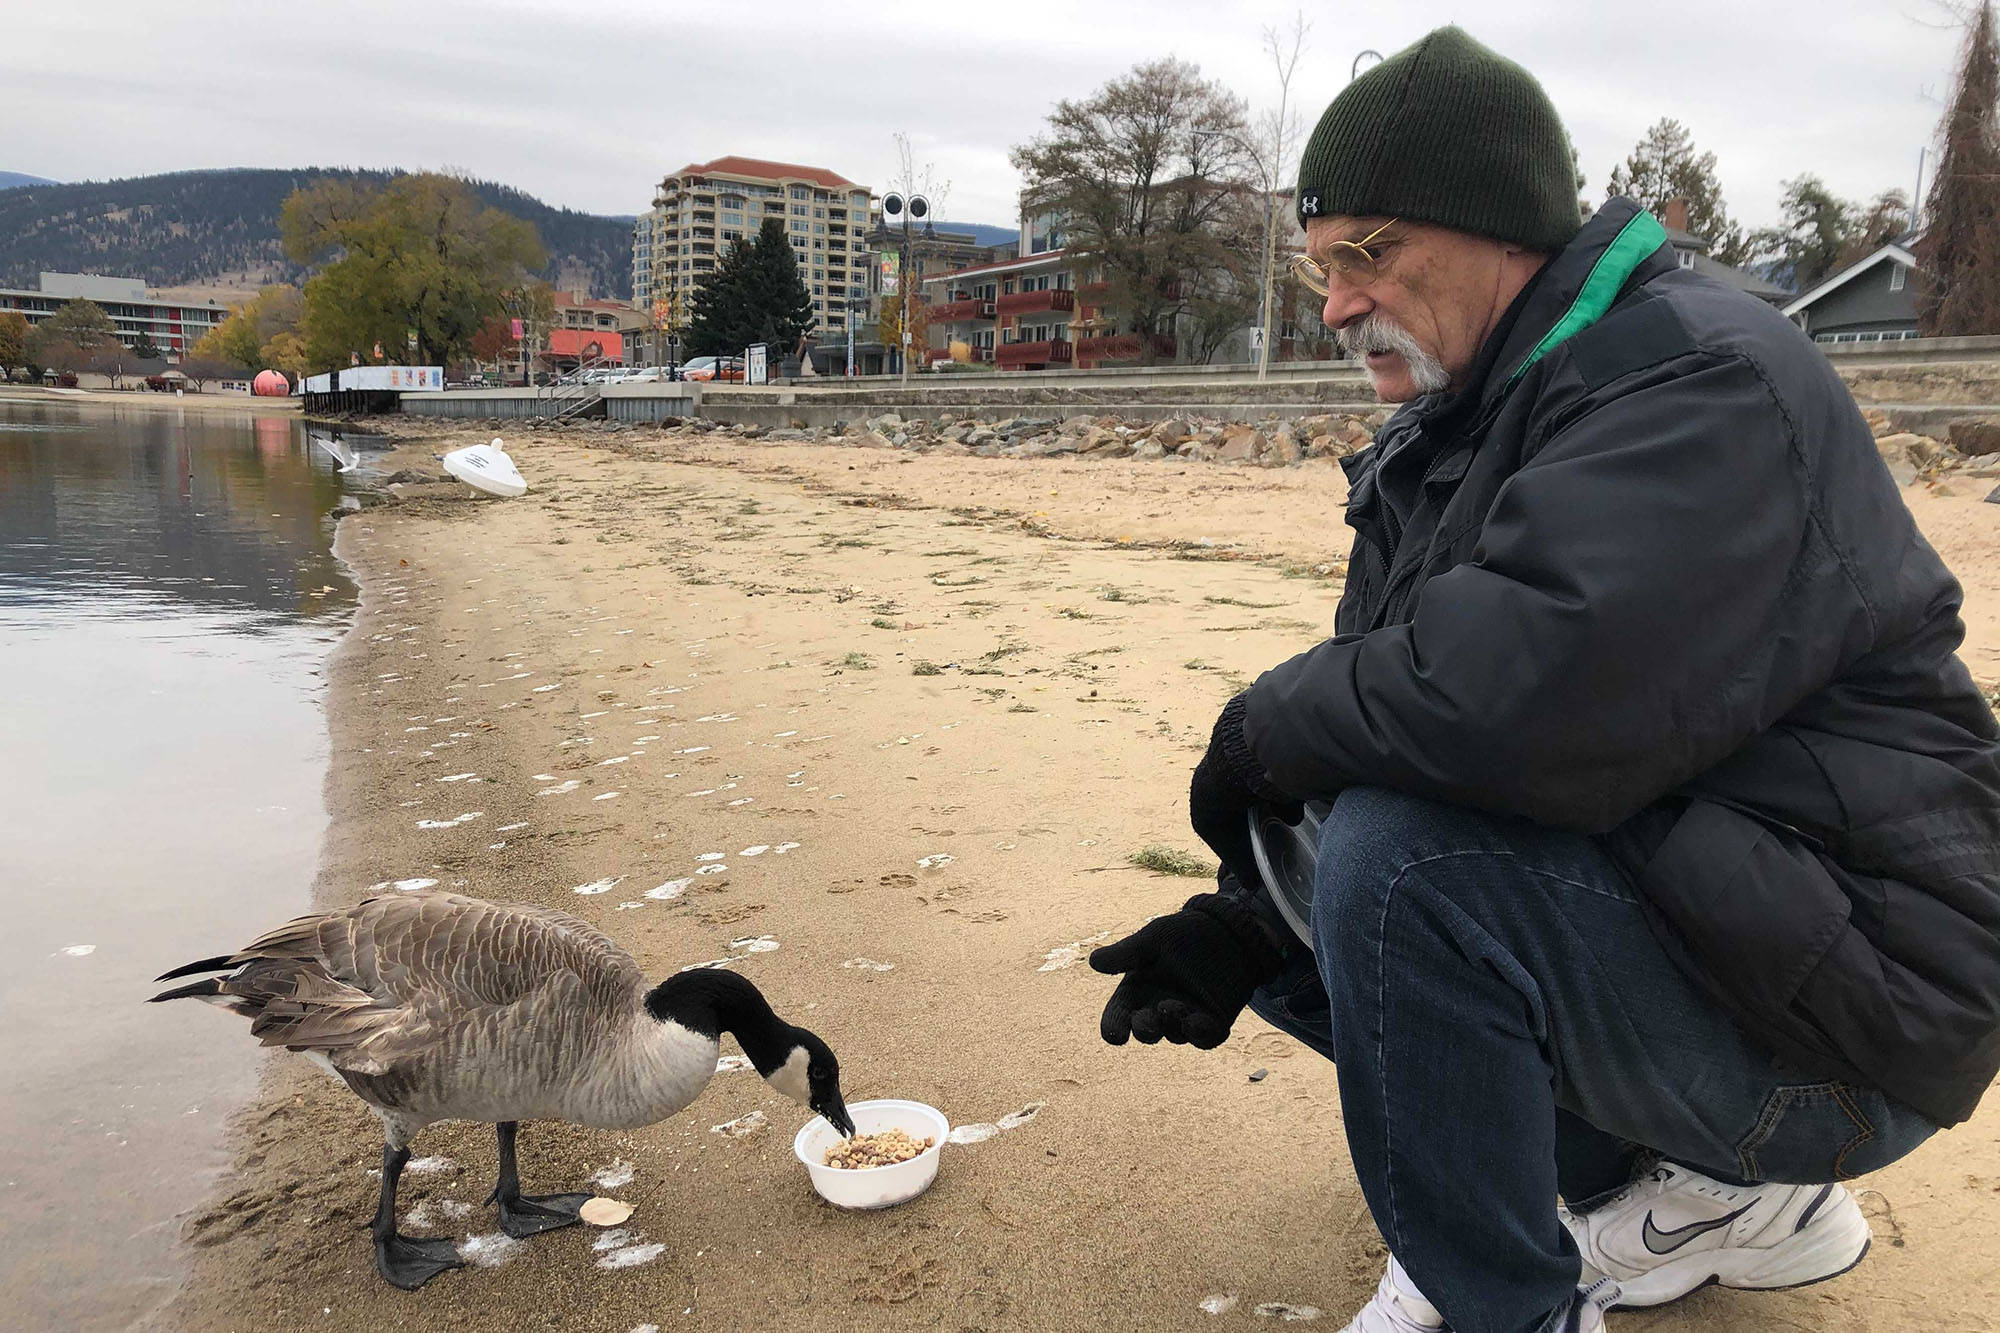 Dave Choukalos visits with Kevin, the broken winged Canada goose, a few times a week. Dave's worried Kevin won't make it through winter. (Monique Tamminga - Western News)